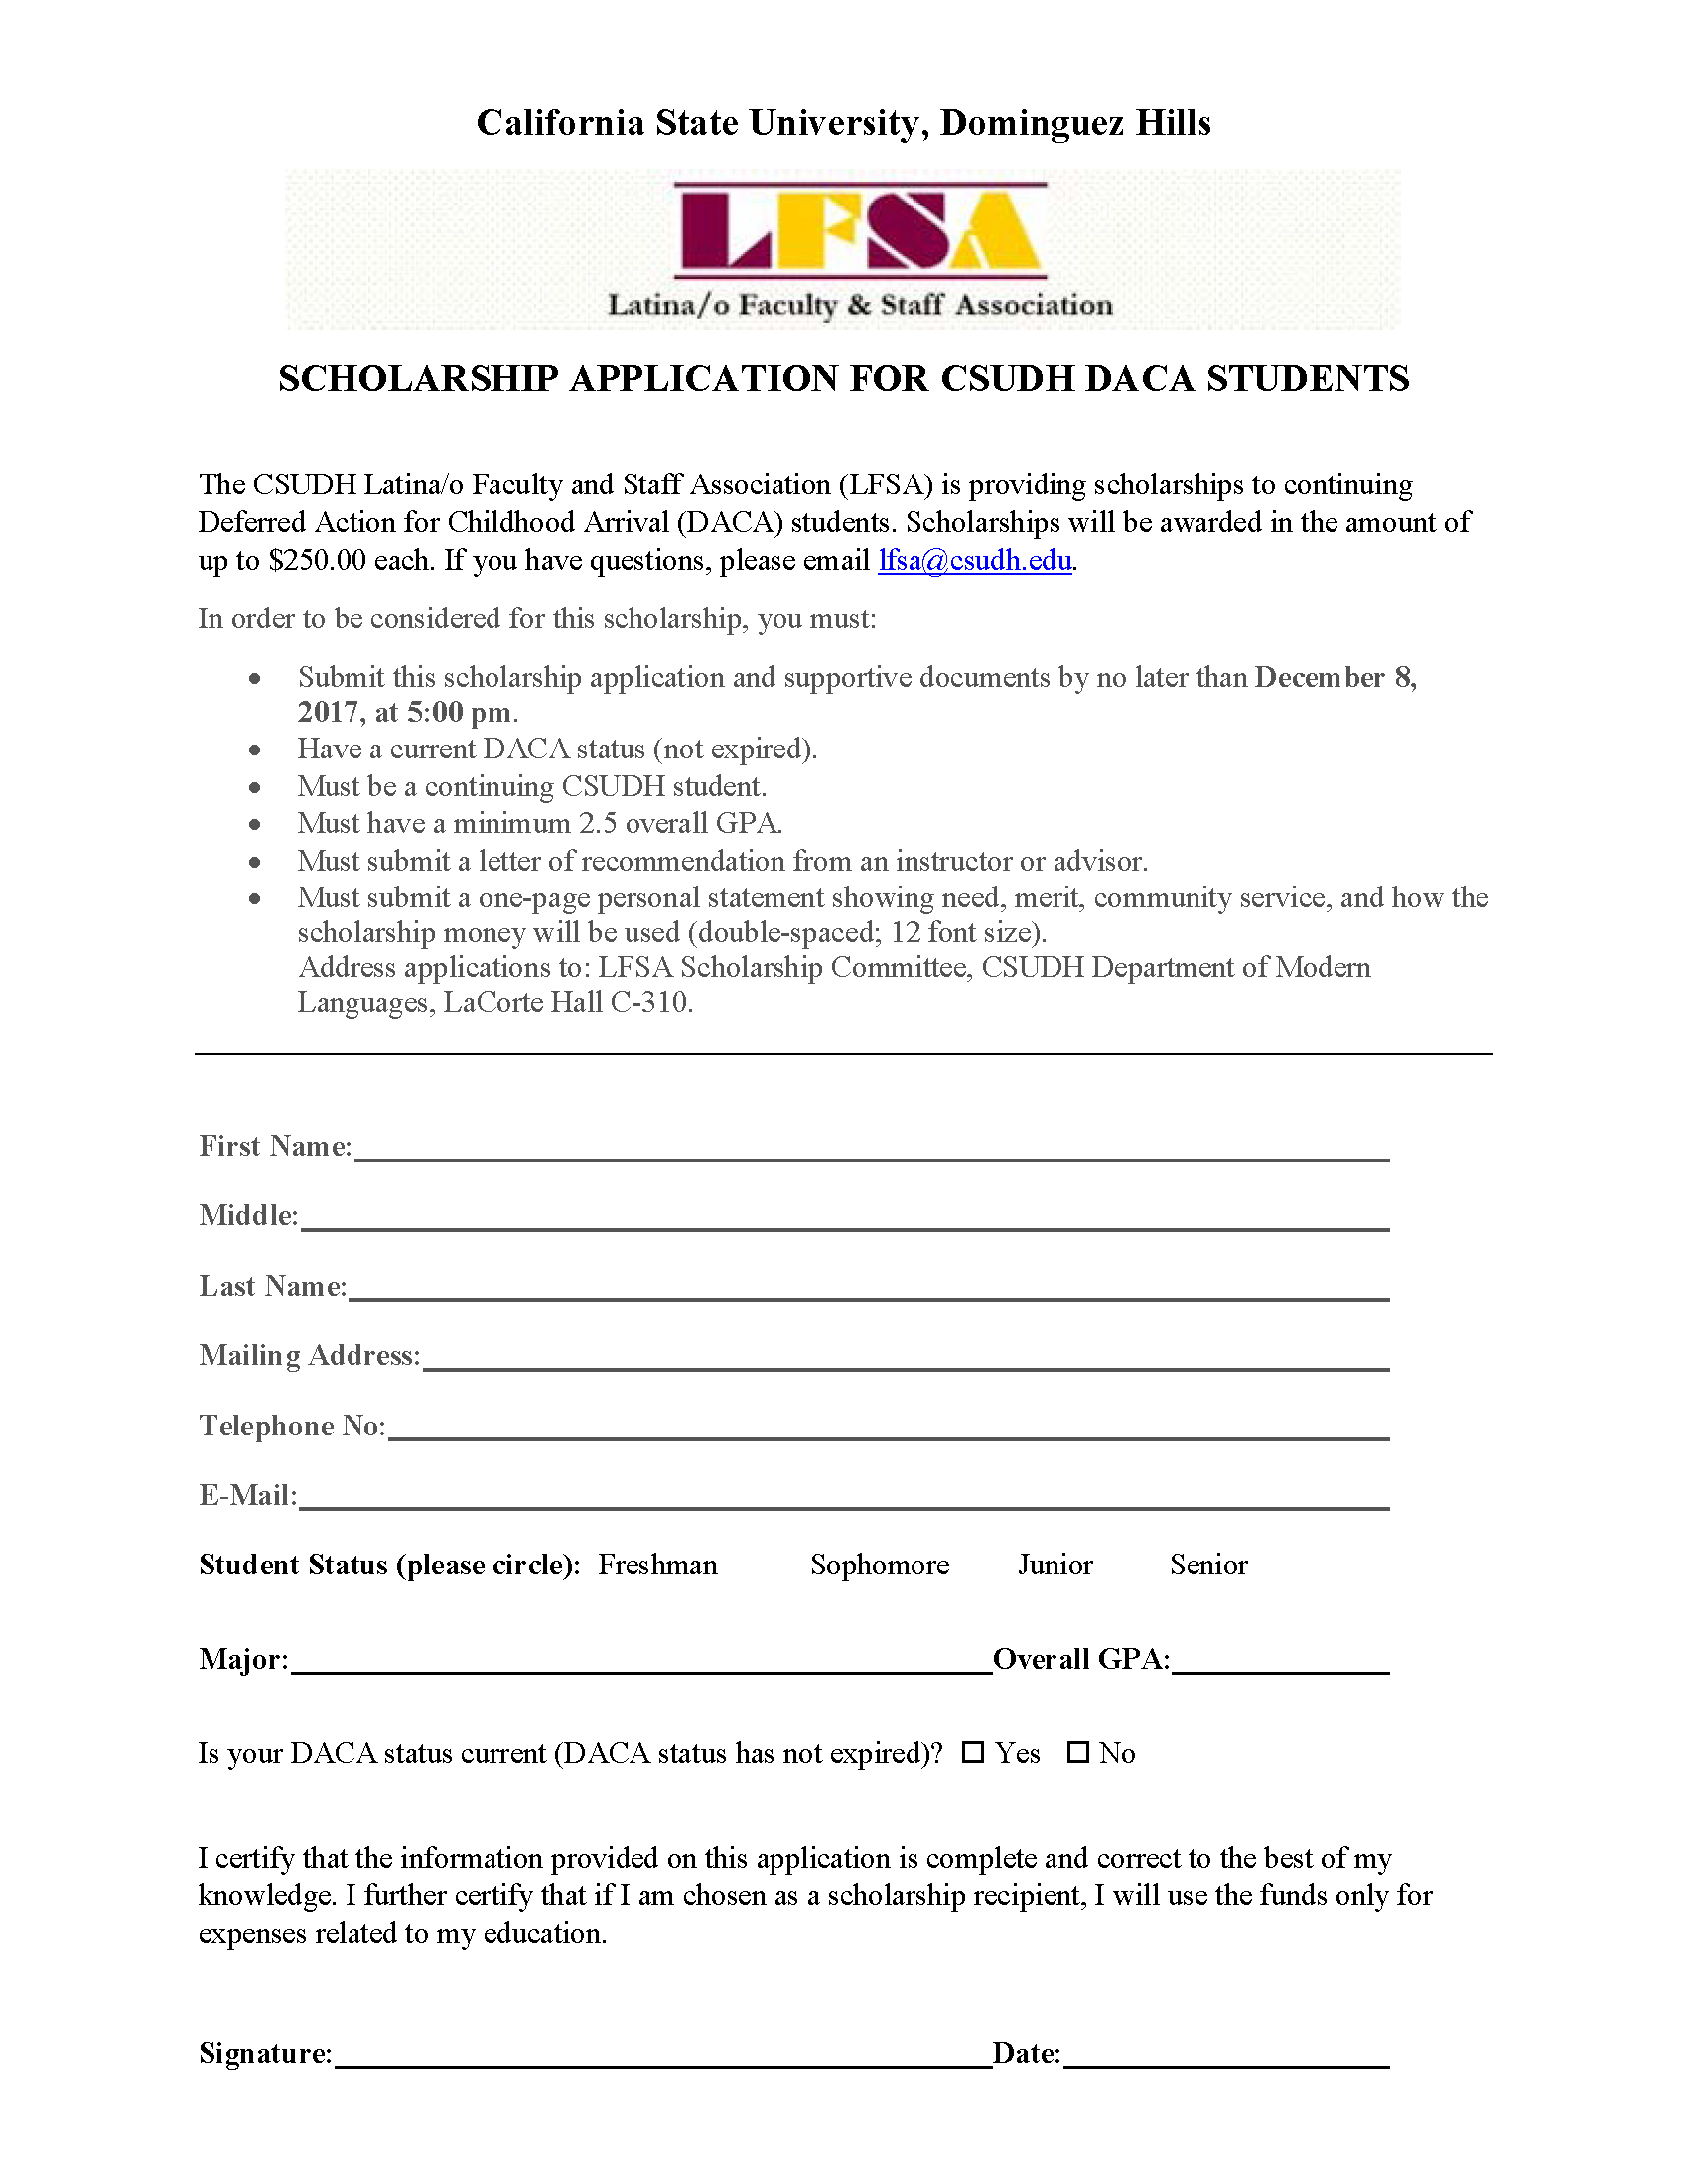 SCHOLARSHIP APPLICATION FOR CSUDH DACA STUDENTS